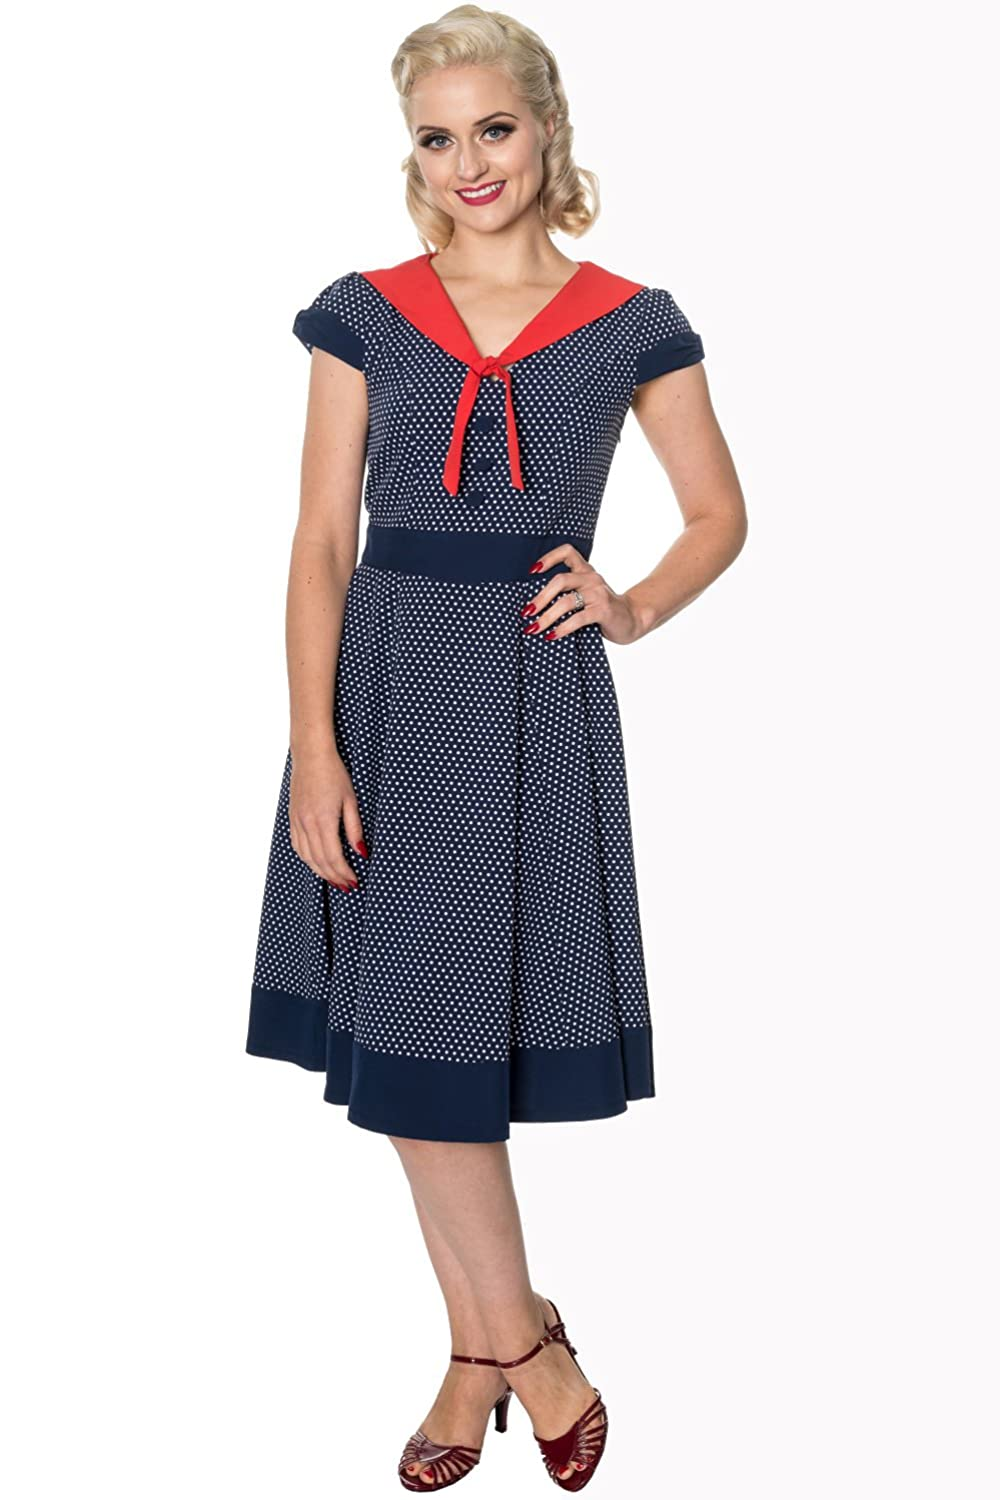 Vintage Cruise Outfits, Vacation Clothing Banned The Insider Retro Vintage Tea Dress - White Black or Navy $50.95 AT vintagedancer.com